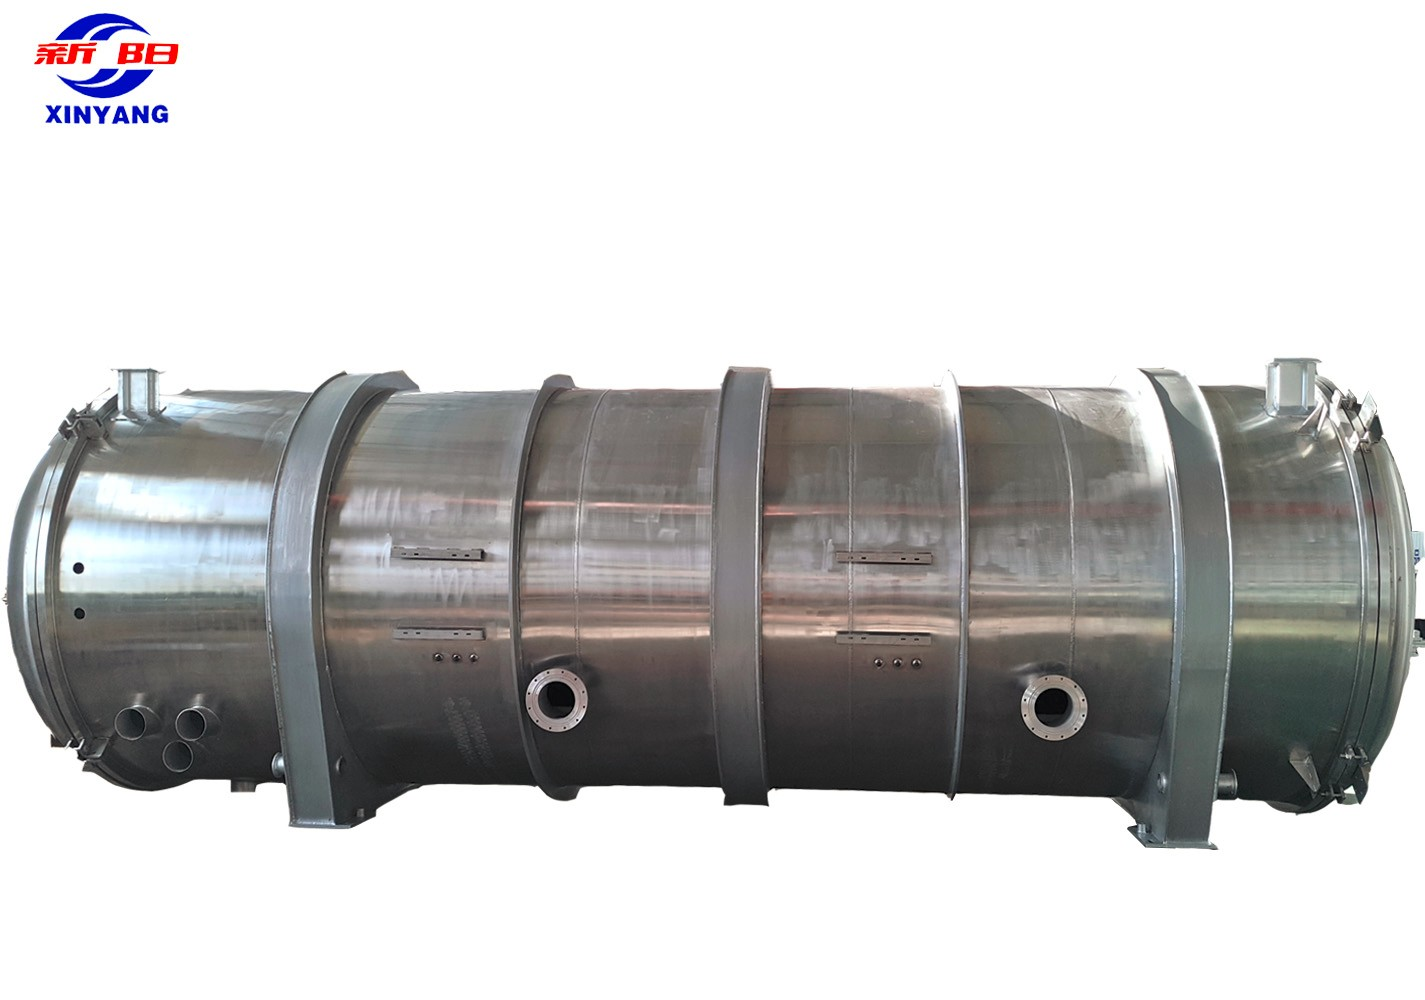 Large Freeze Dryer with 1500kg Capacity Manufacturers, Large Freeze Dryer with 1500kg Capacity Factory, Supply Large Freeze Dryer with 1500kg Capacity